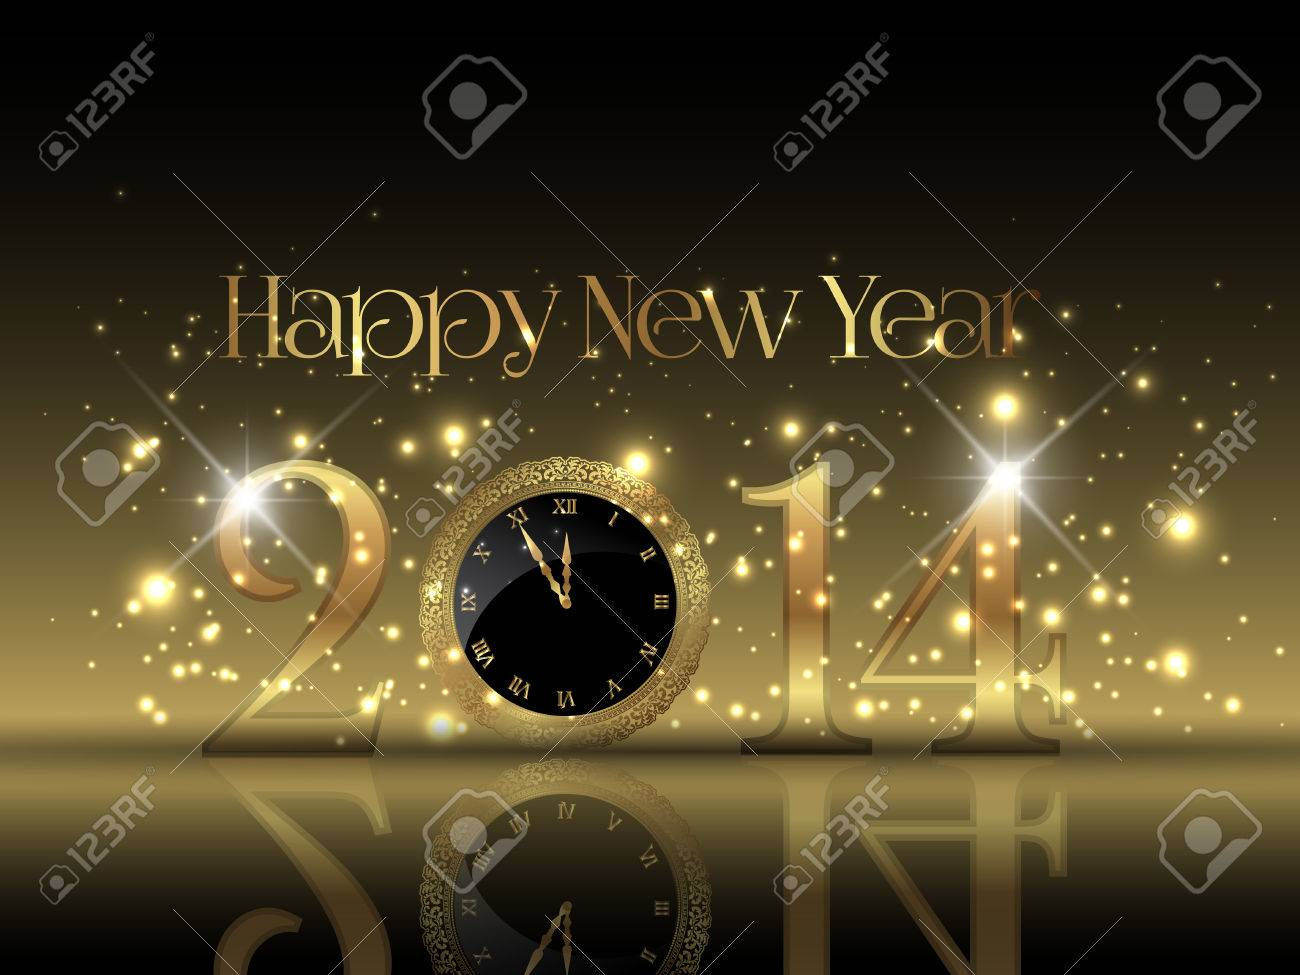 decorative happy new year background with a clock design stock photo 24512543